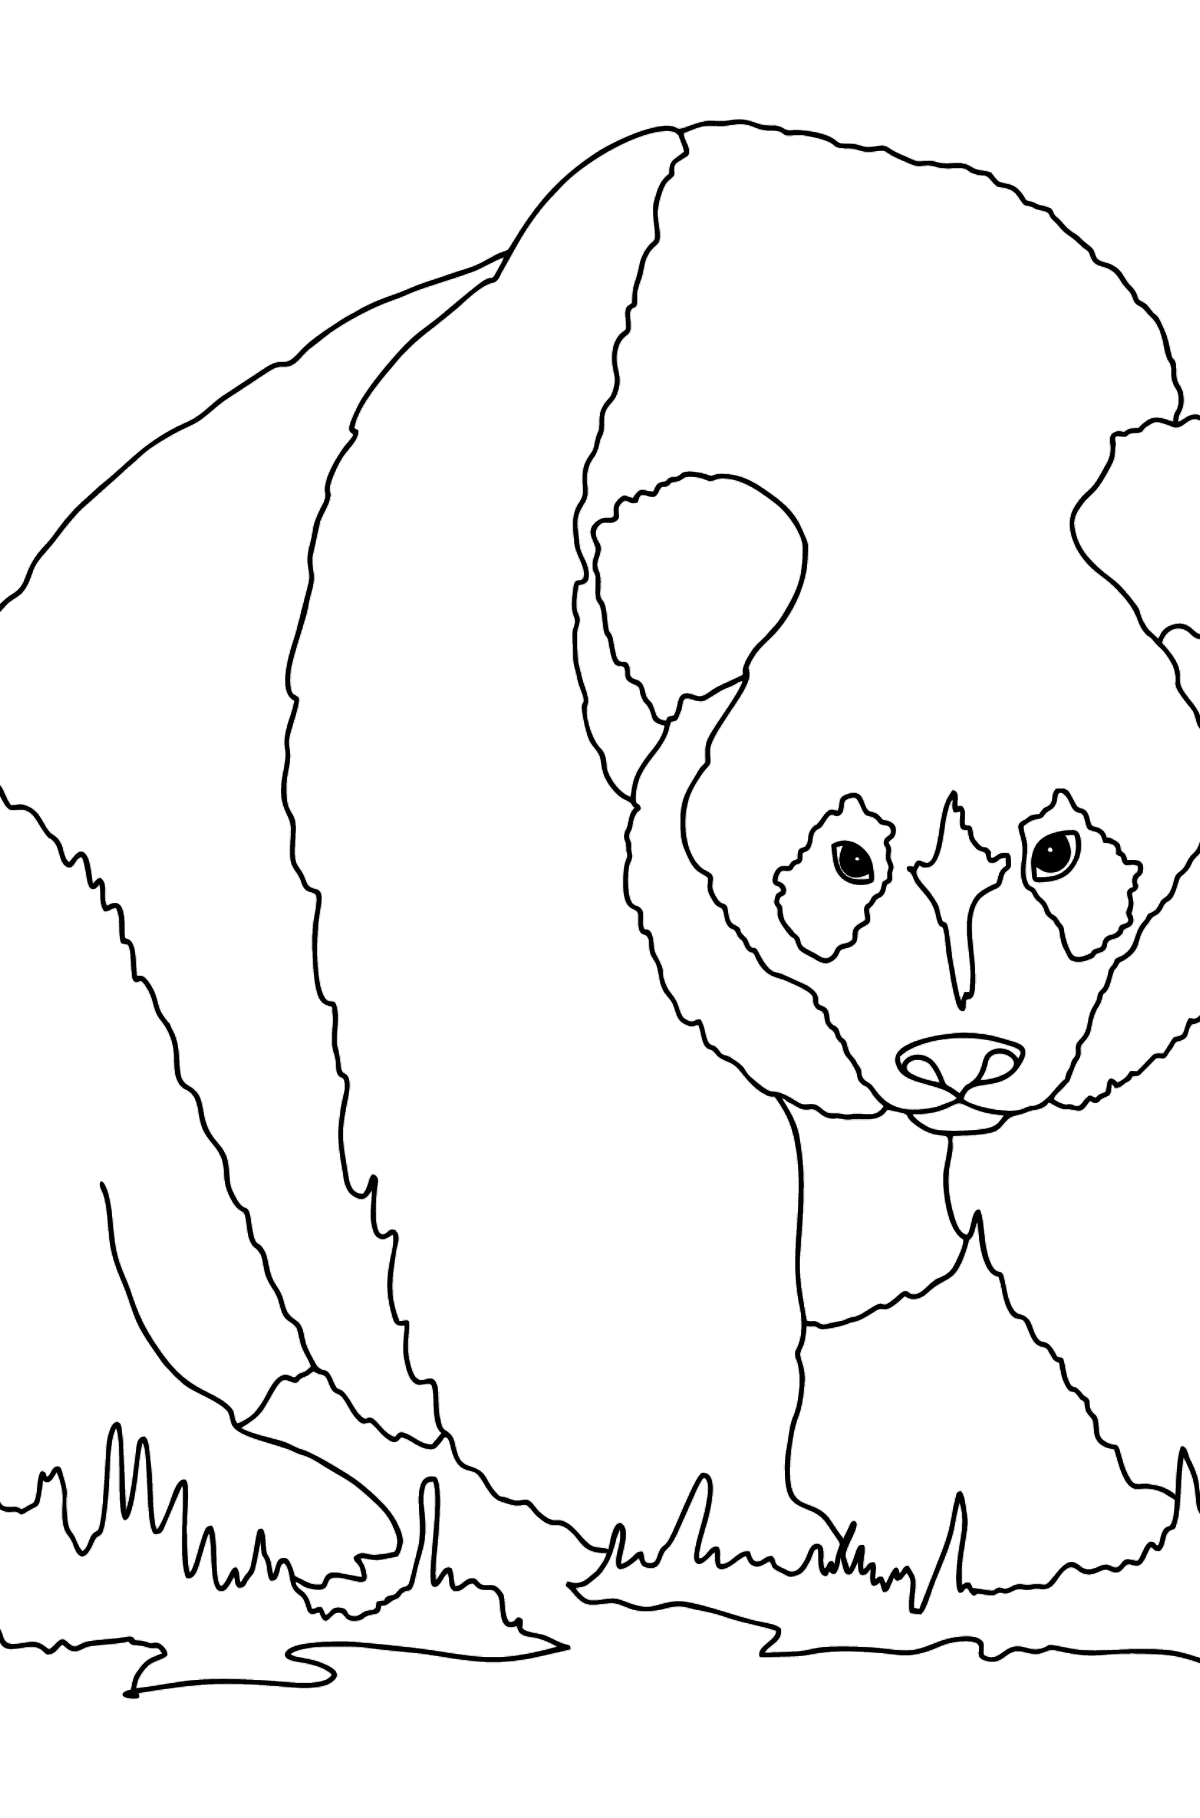 Coloring Page - A Panda is Preparing for Defense - Coloring Pages for Kids